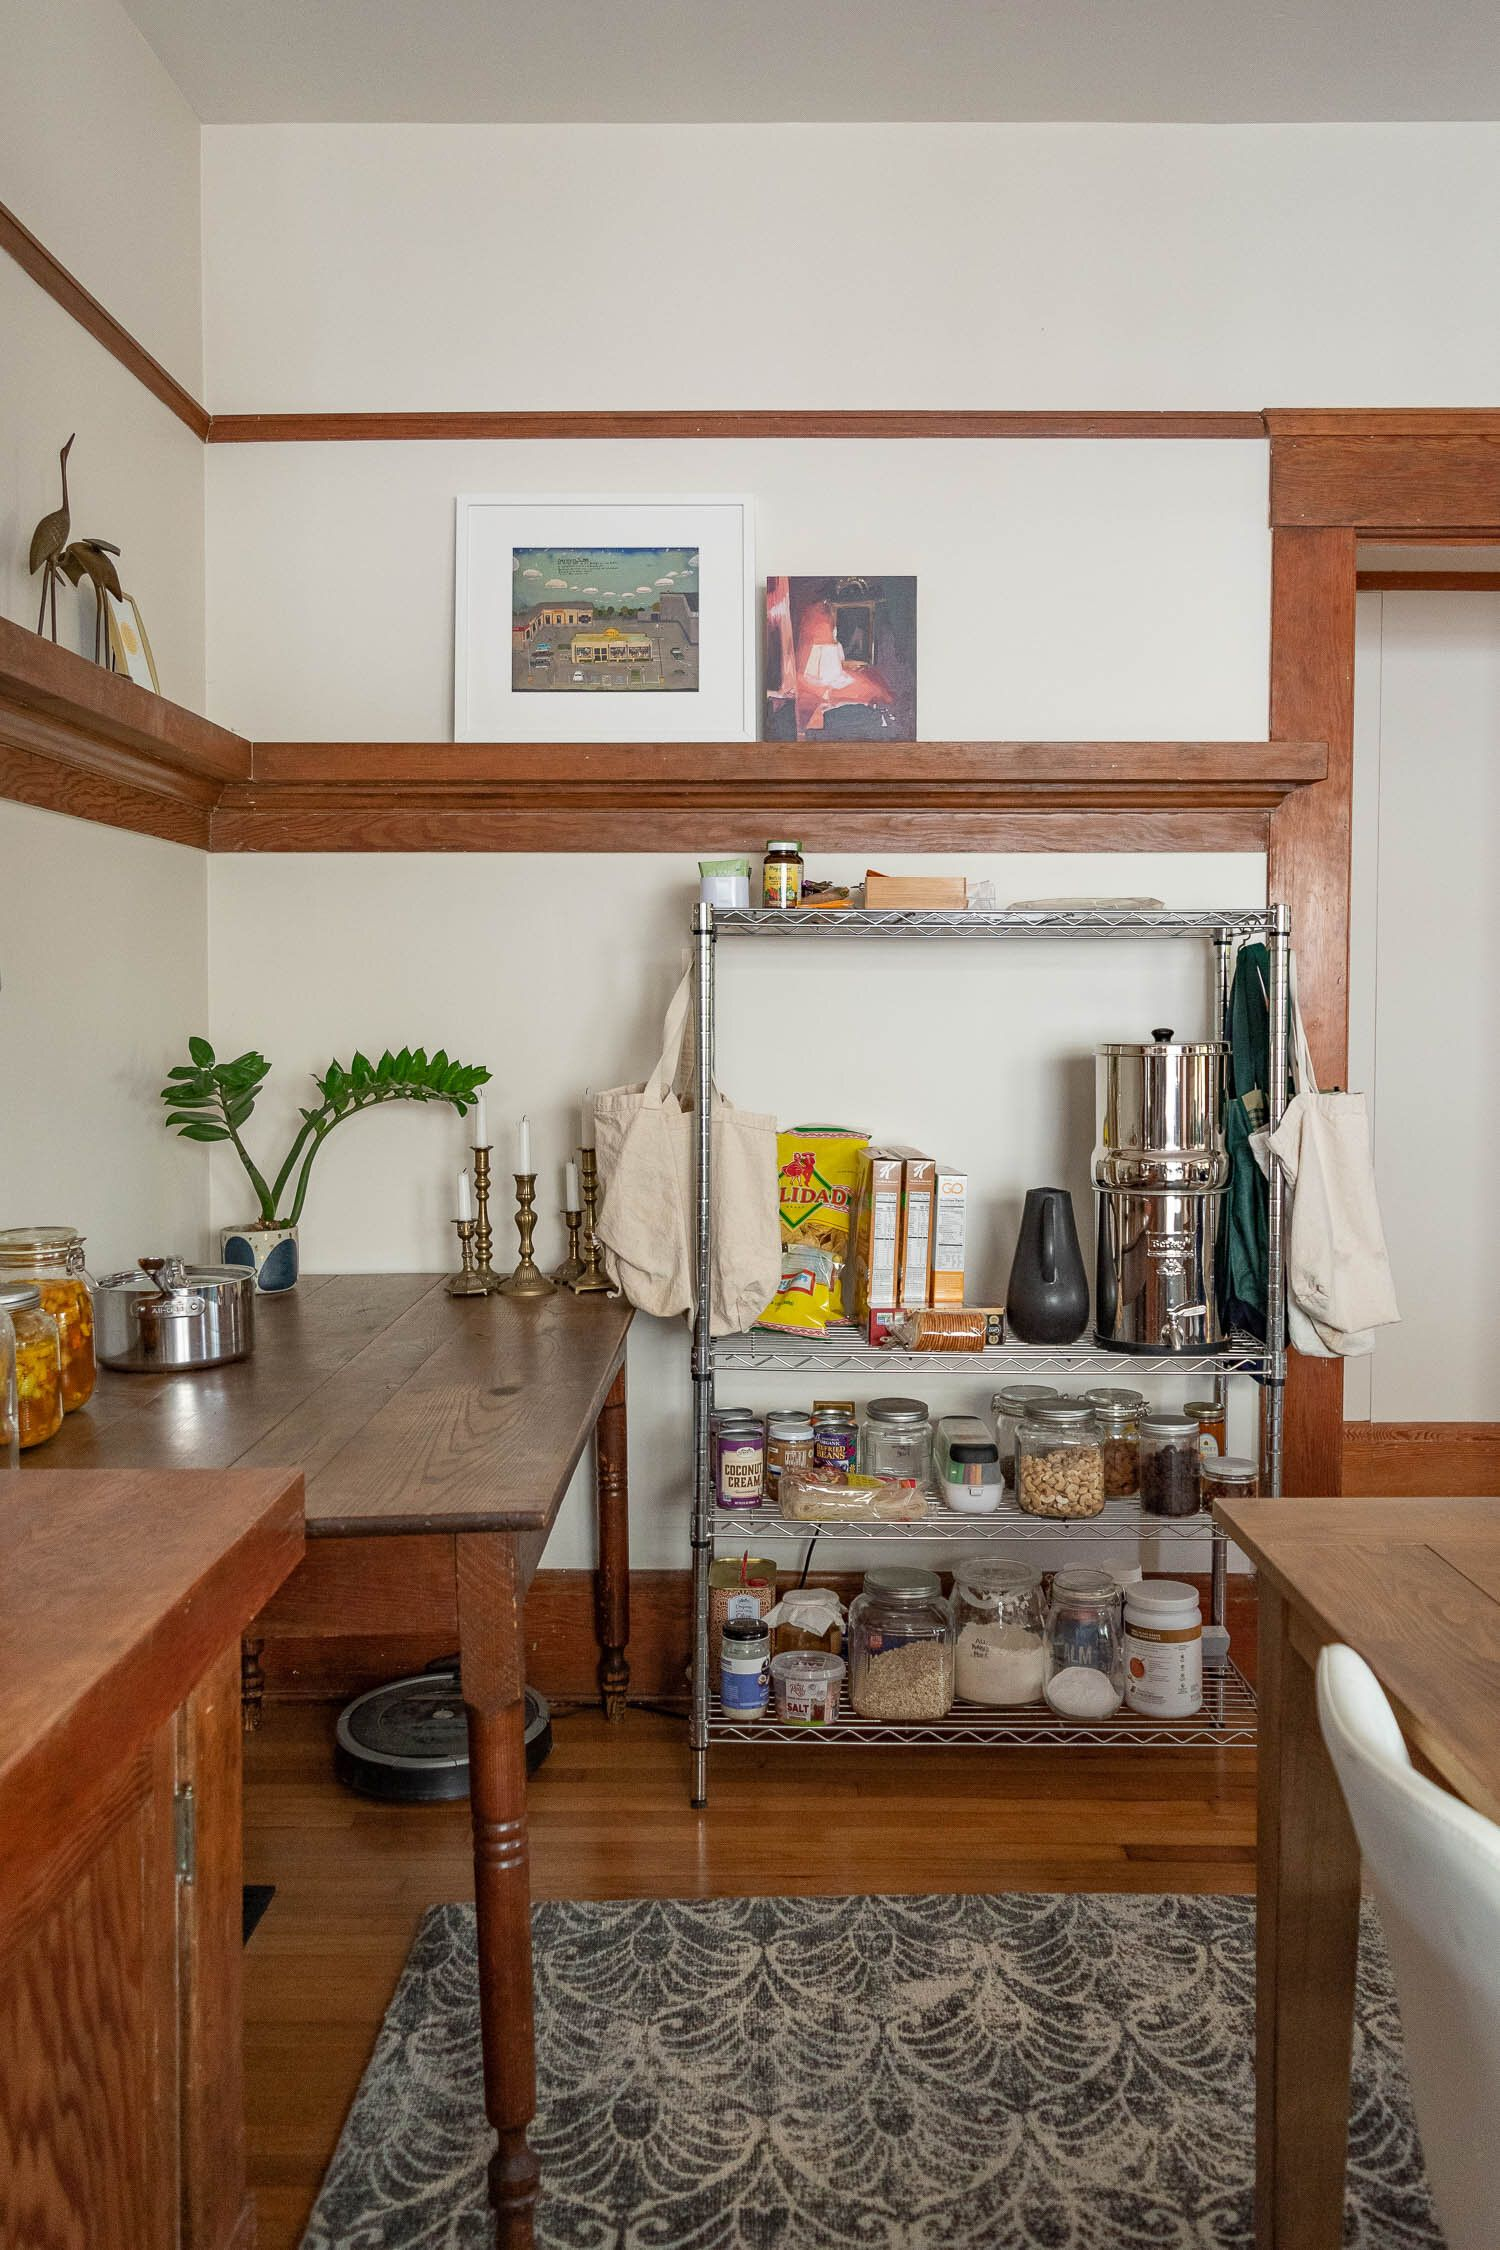 How We Re Living Without A Kitchen During The Remodel A Tour Of Our Temporary Cooking Space In 2020 Remodel Kitchen Living Renovation Project